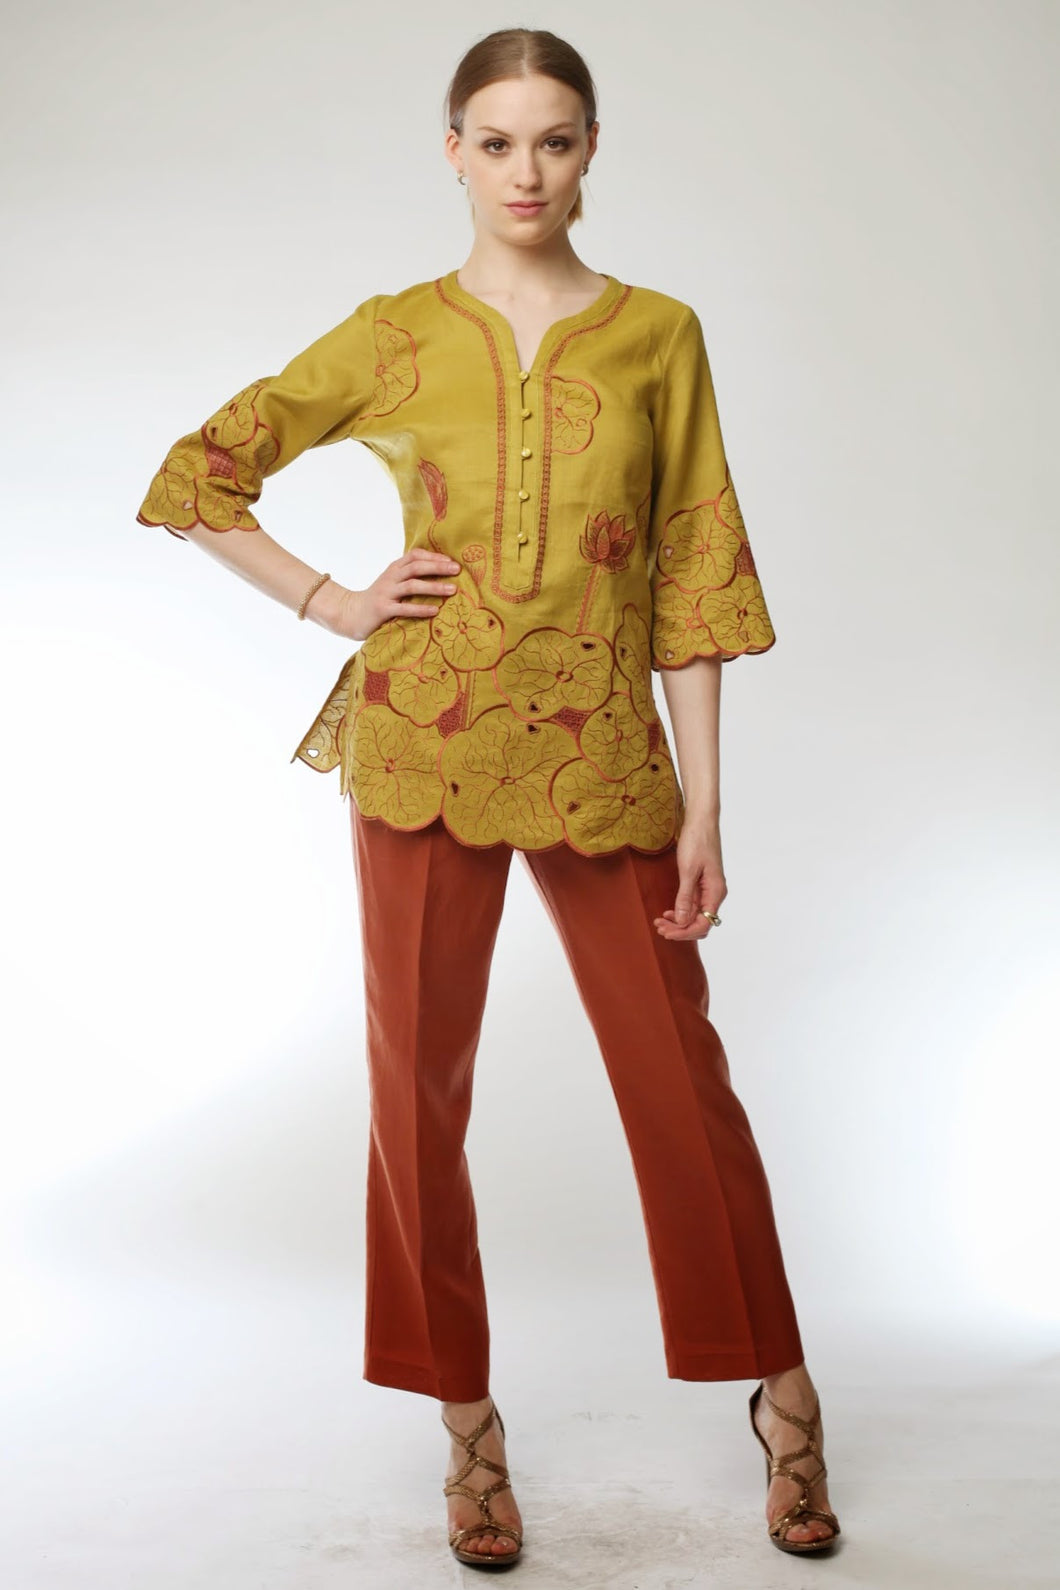 Embroidered Lotus Tunic and Pant Set (Teal/Khaki) Style # 1769P